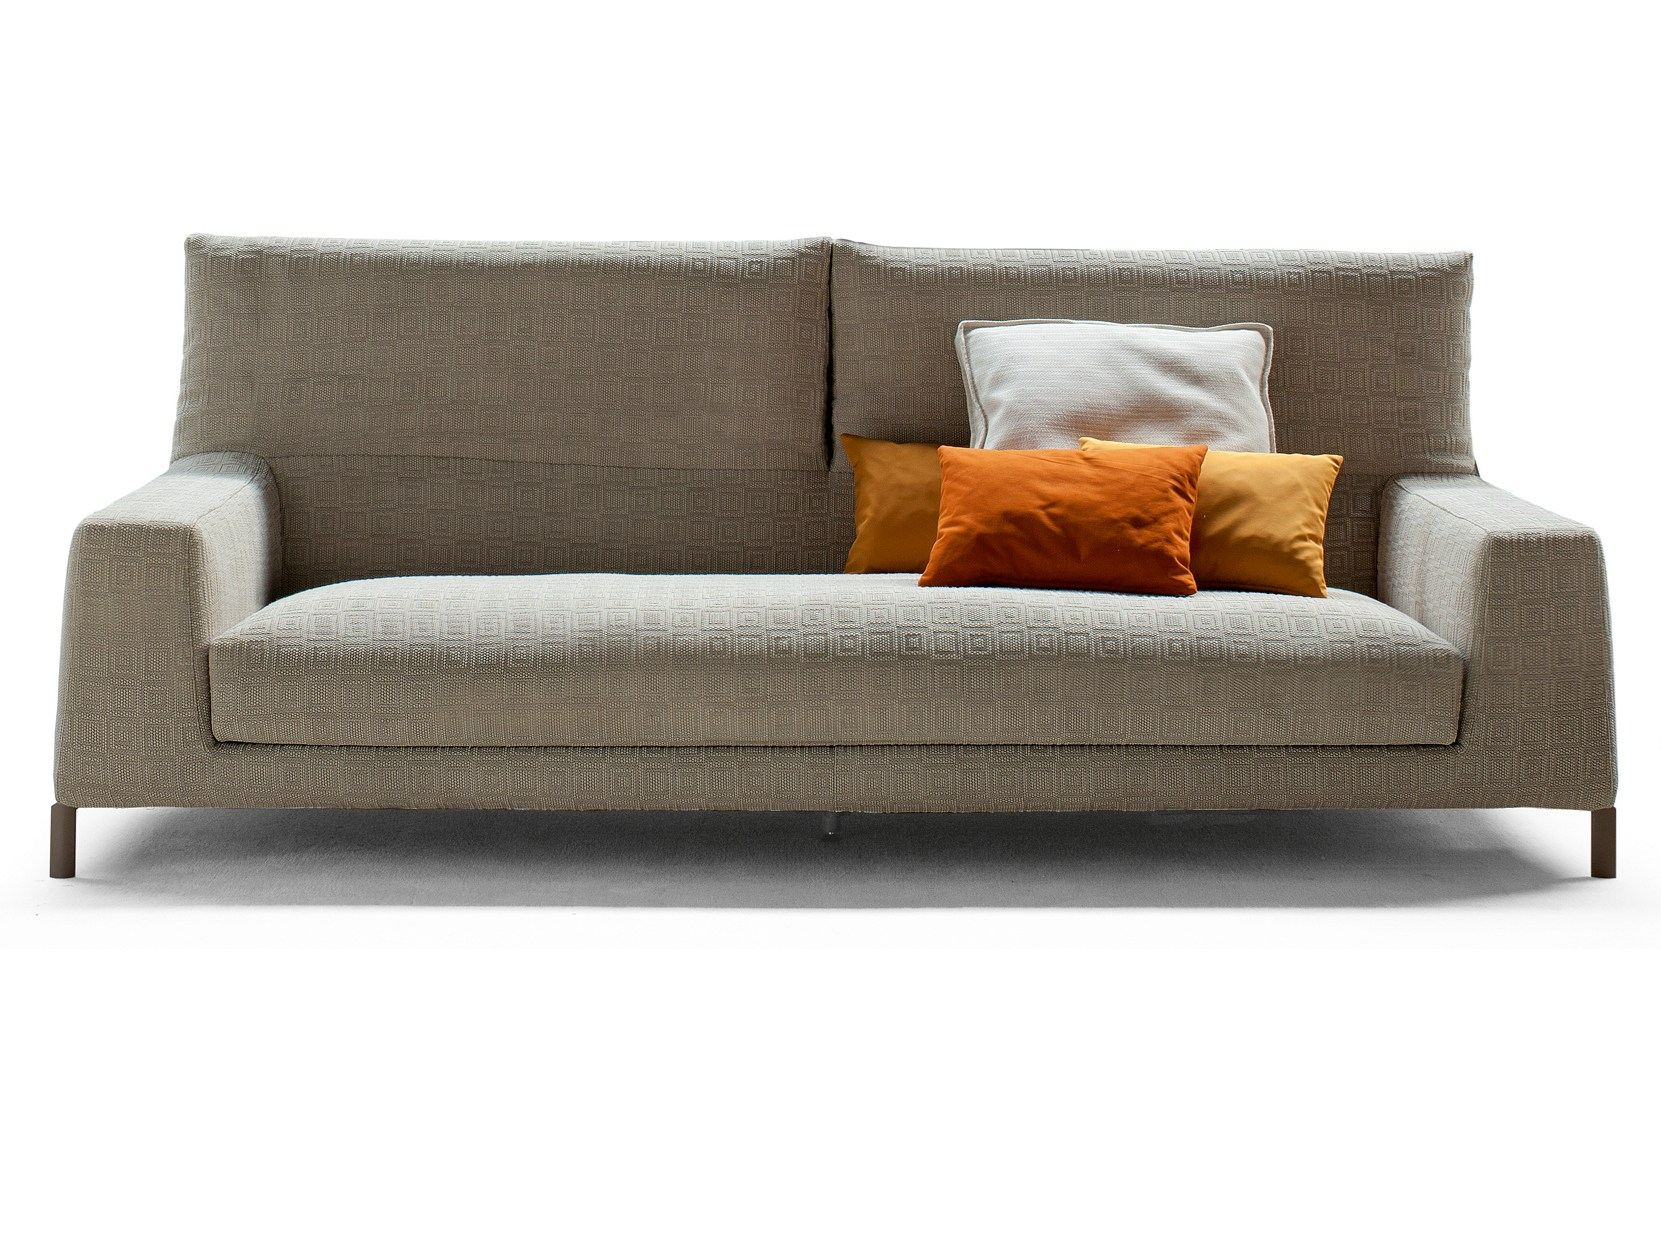 Canap convertible avec repose t te vita by bonaldo design for Appui tete canape